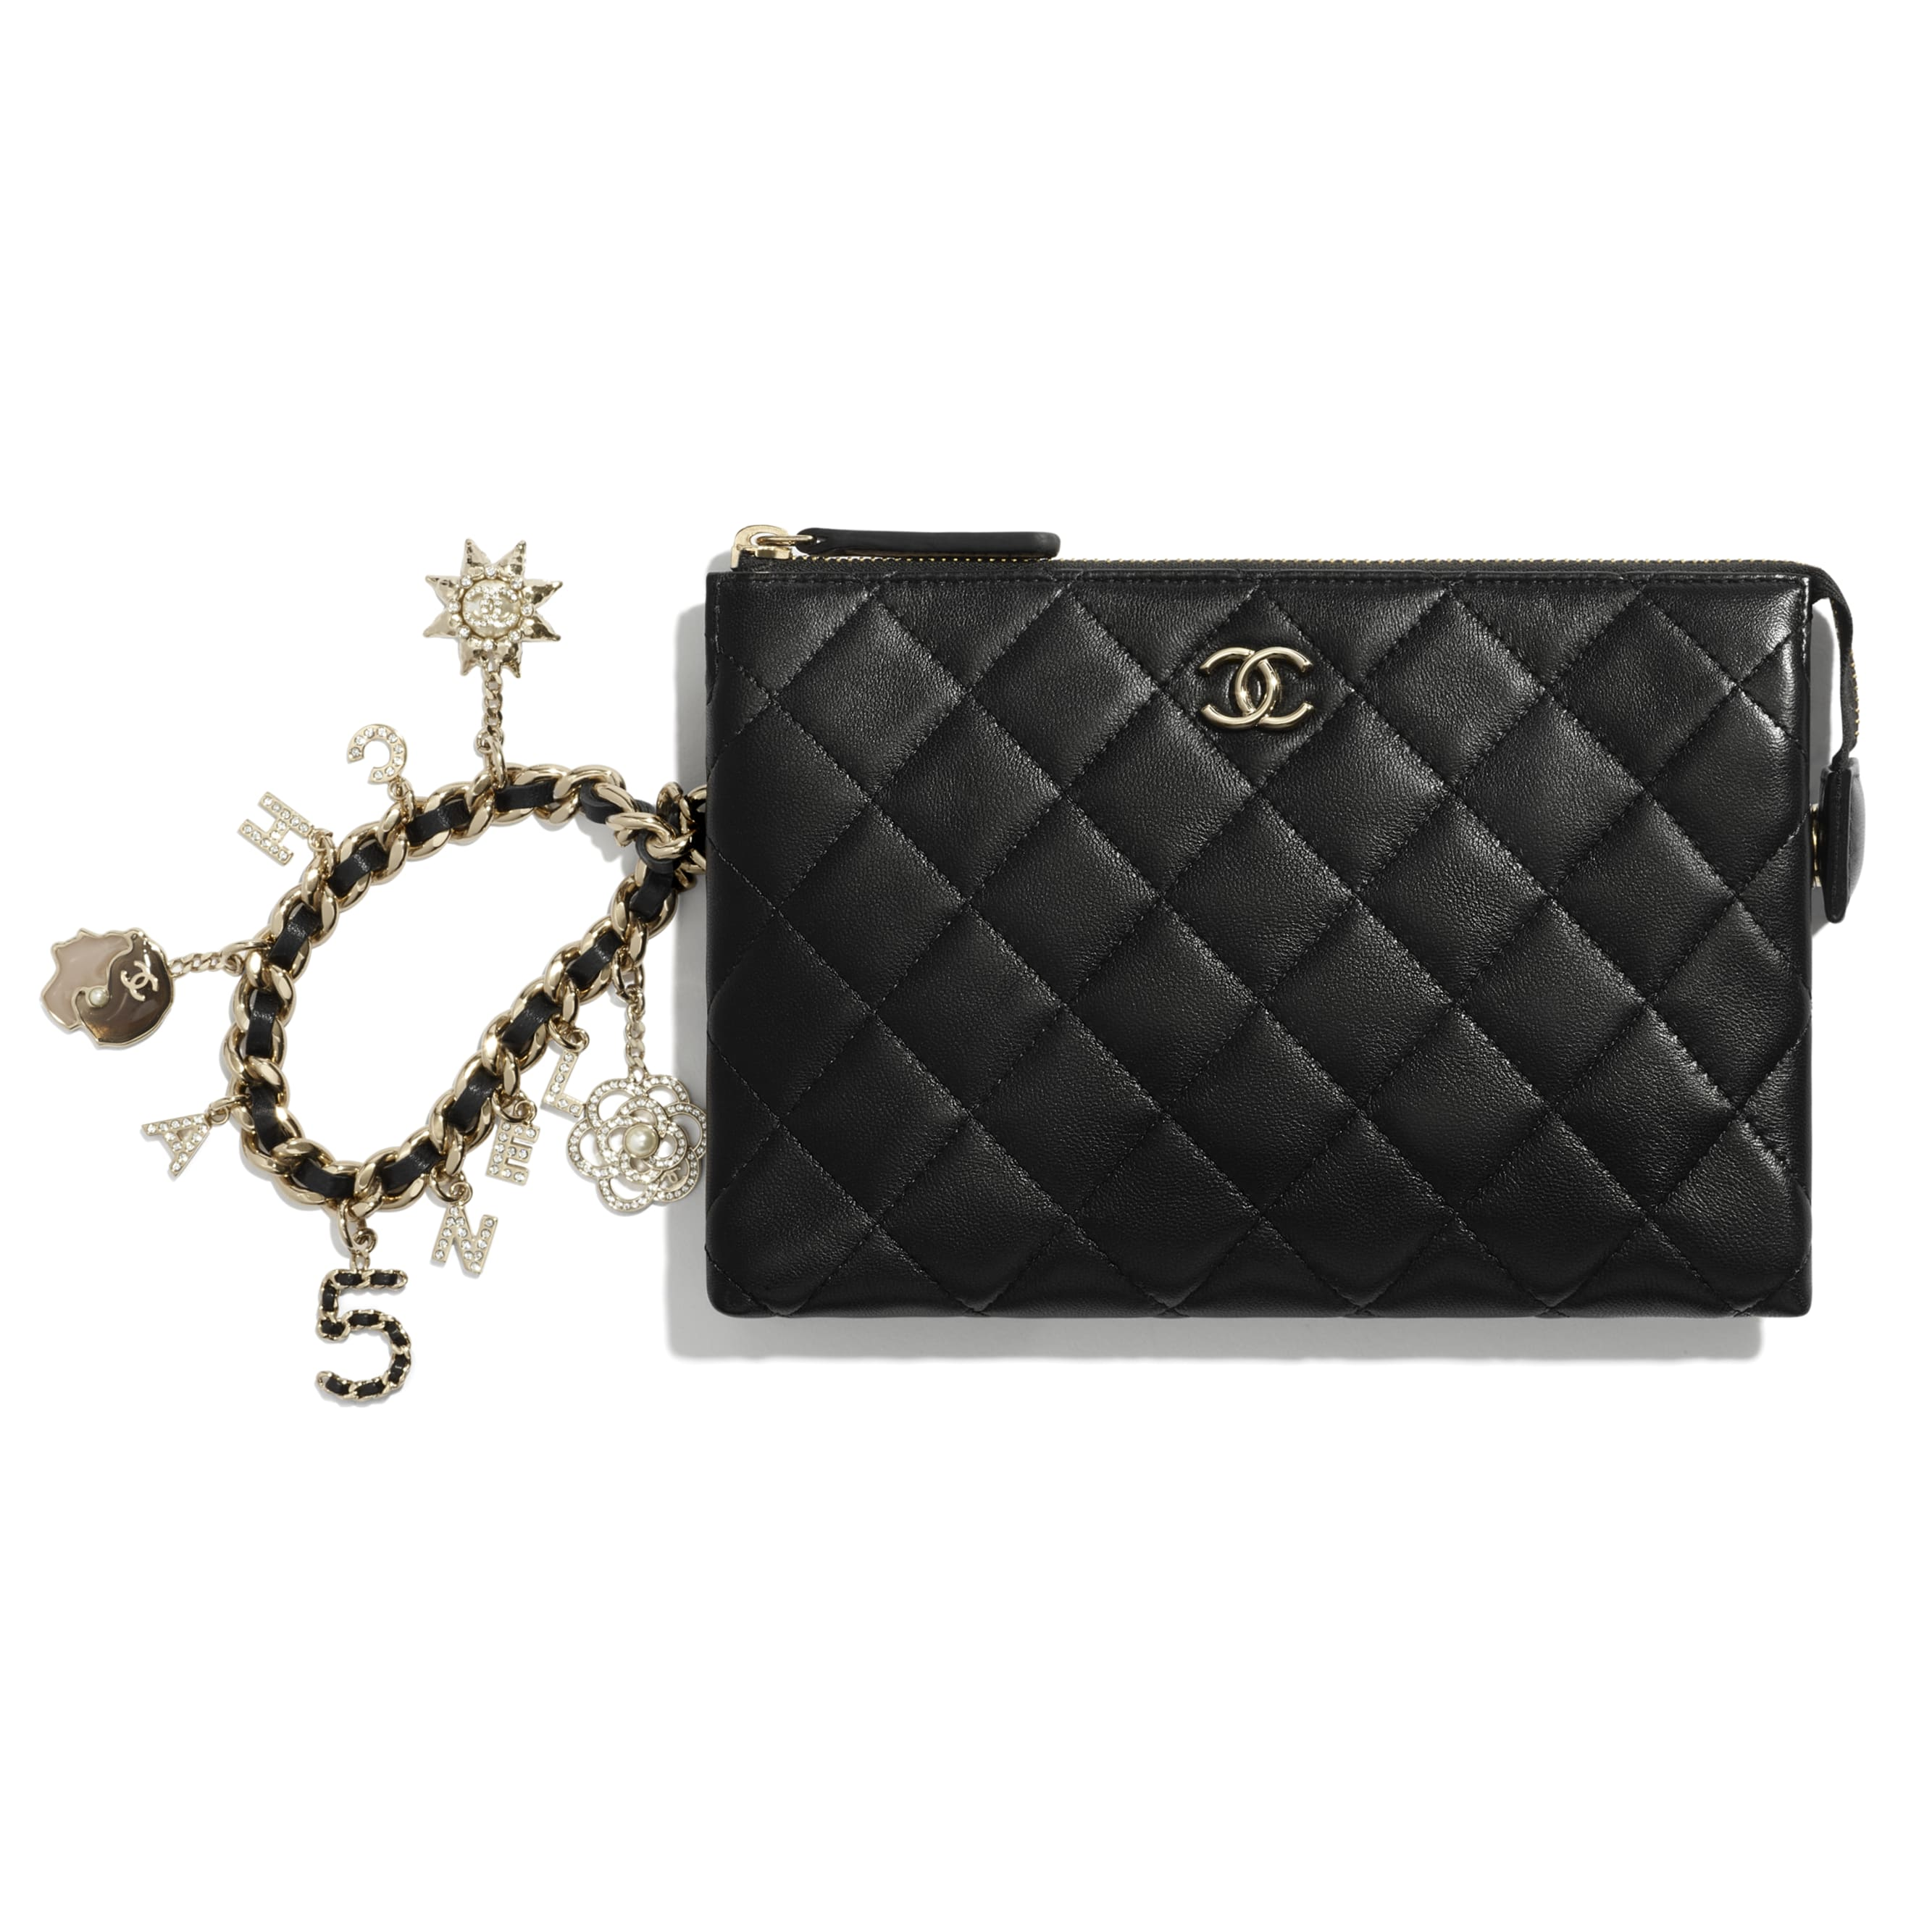 Pouch - Black - Lambskin, Charms & Gold-Tone Metal - CHANEL - Default view - see standard sized version